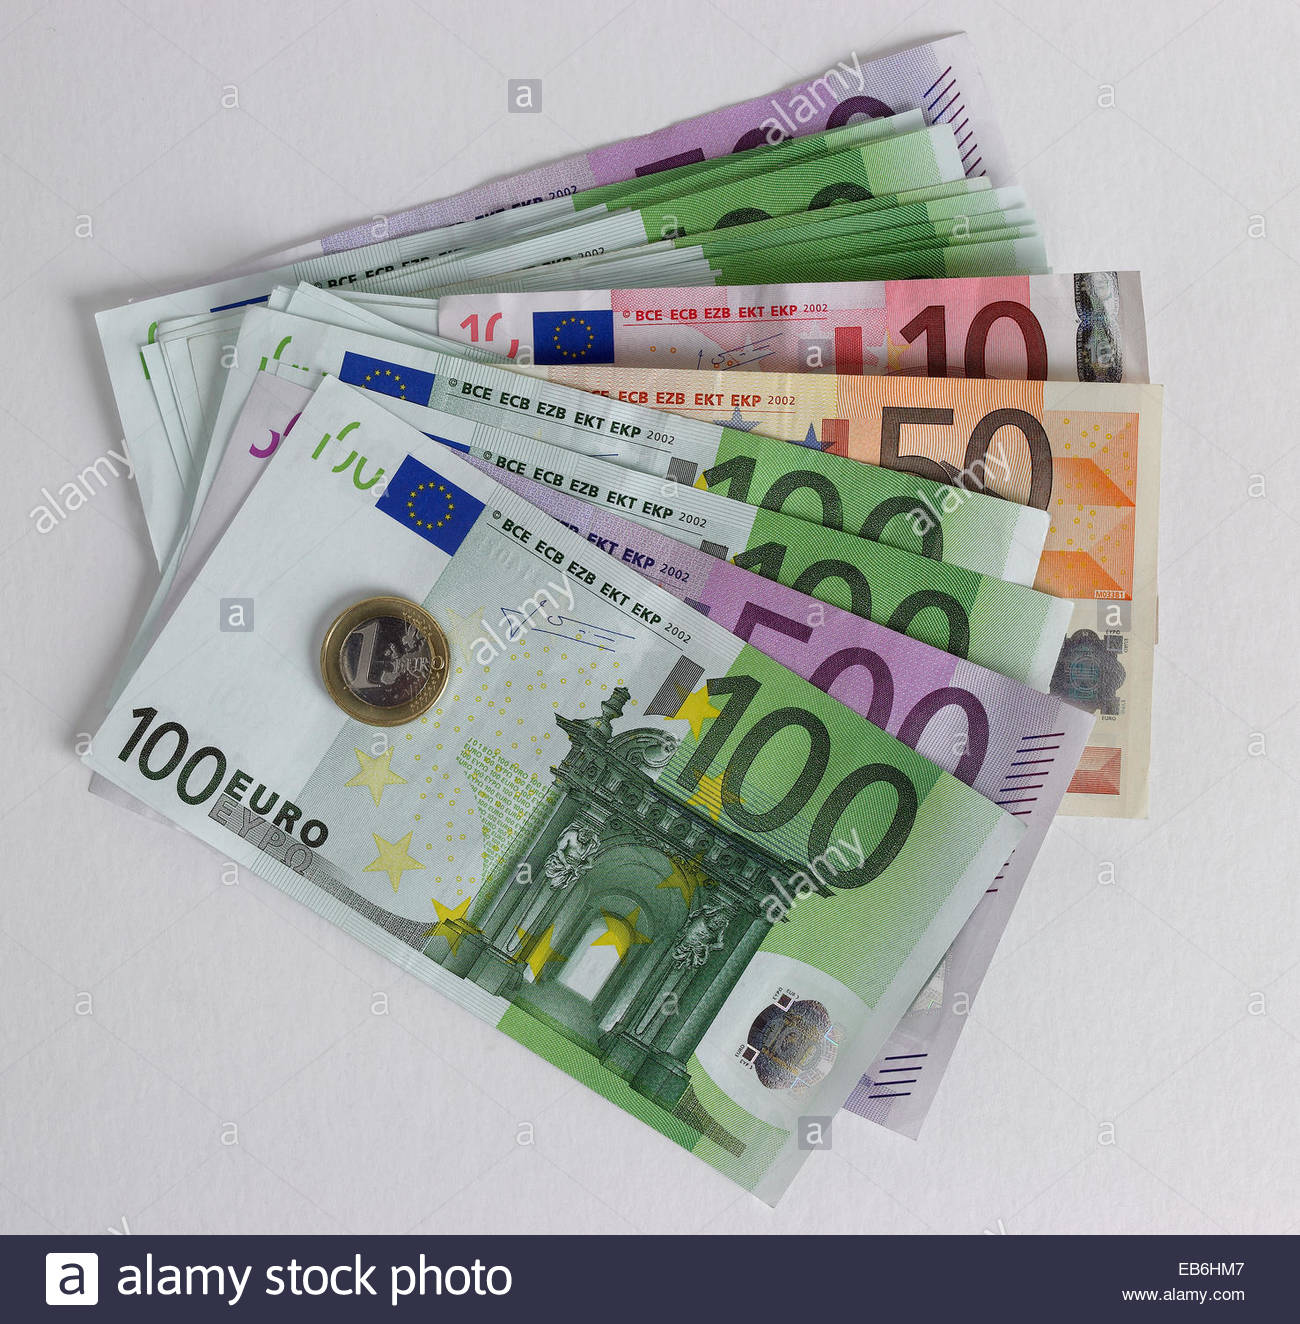 Overhead view of fan of mixed Euro notes with one Euro coin - Stock Image